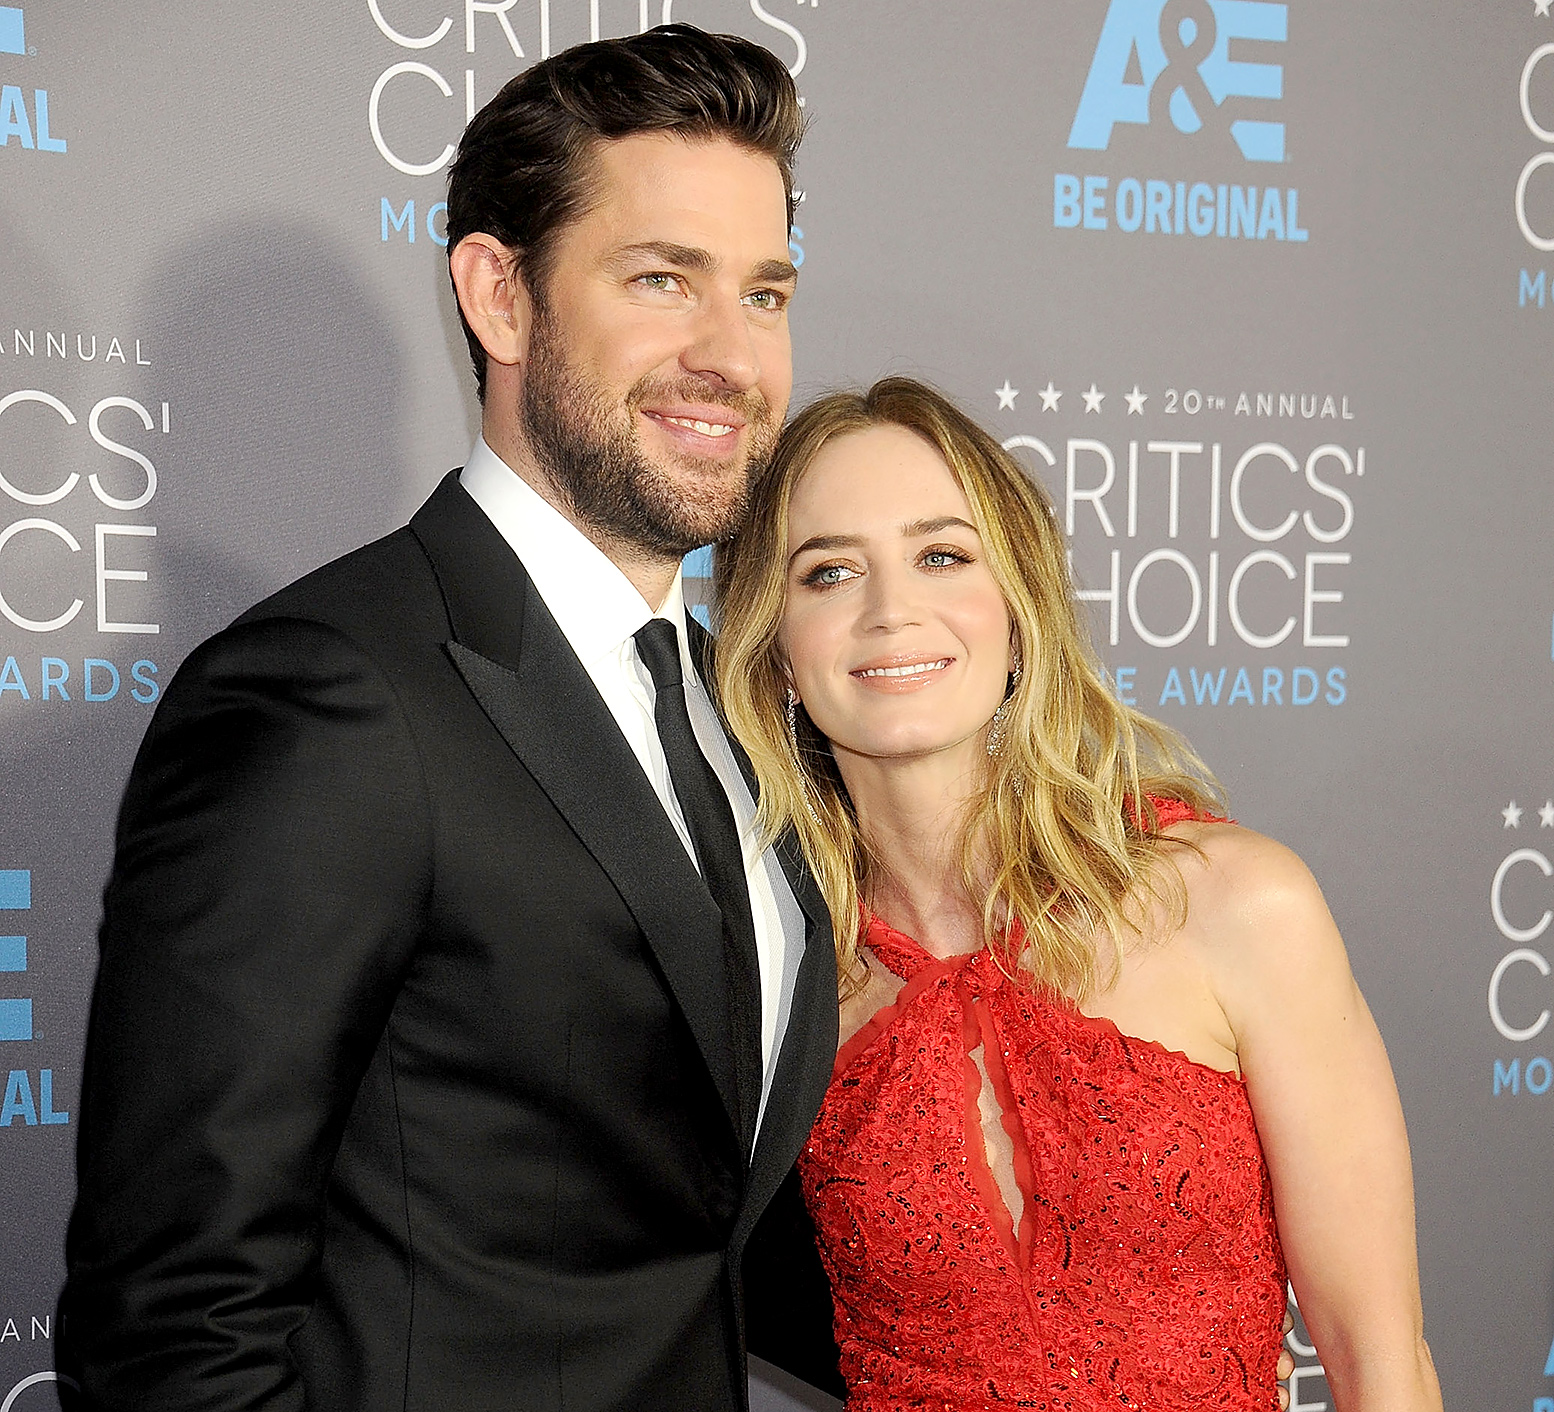 John Krasinski Emily Blunt Wedding.John Krasinski Talks Honeymoon Jennifer Aniston S Wedding